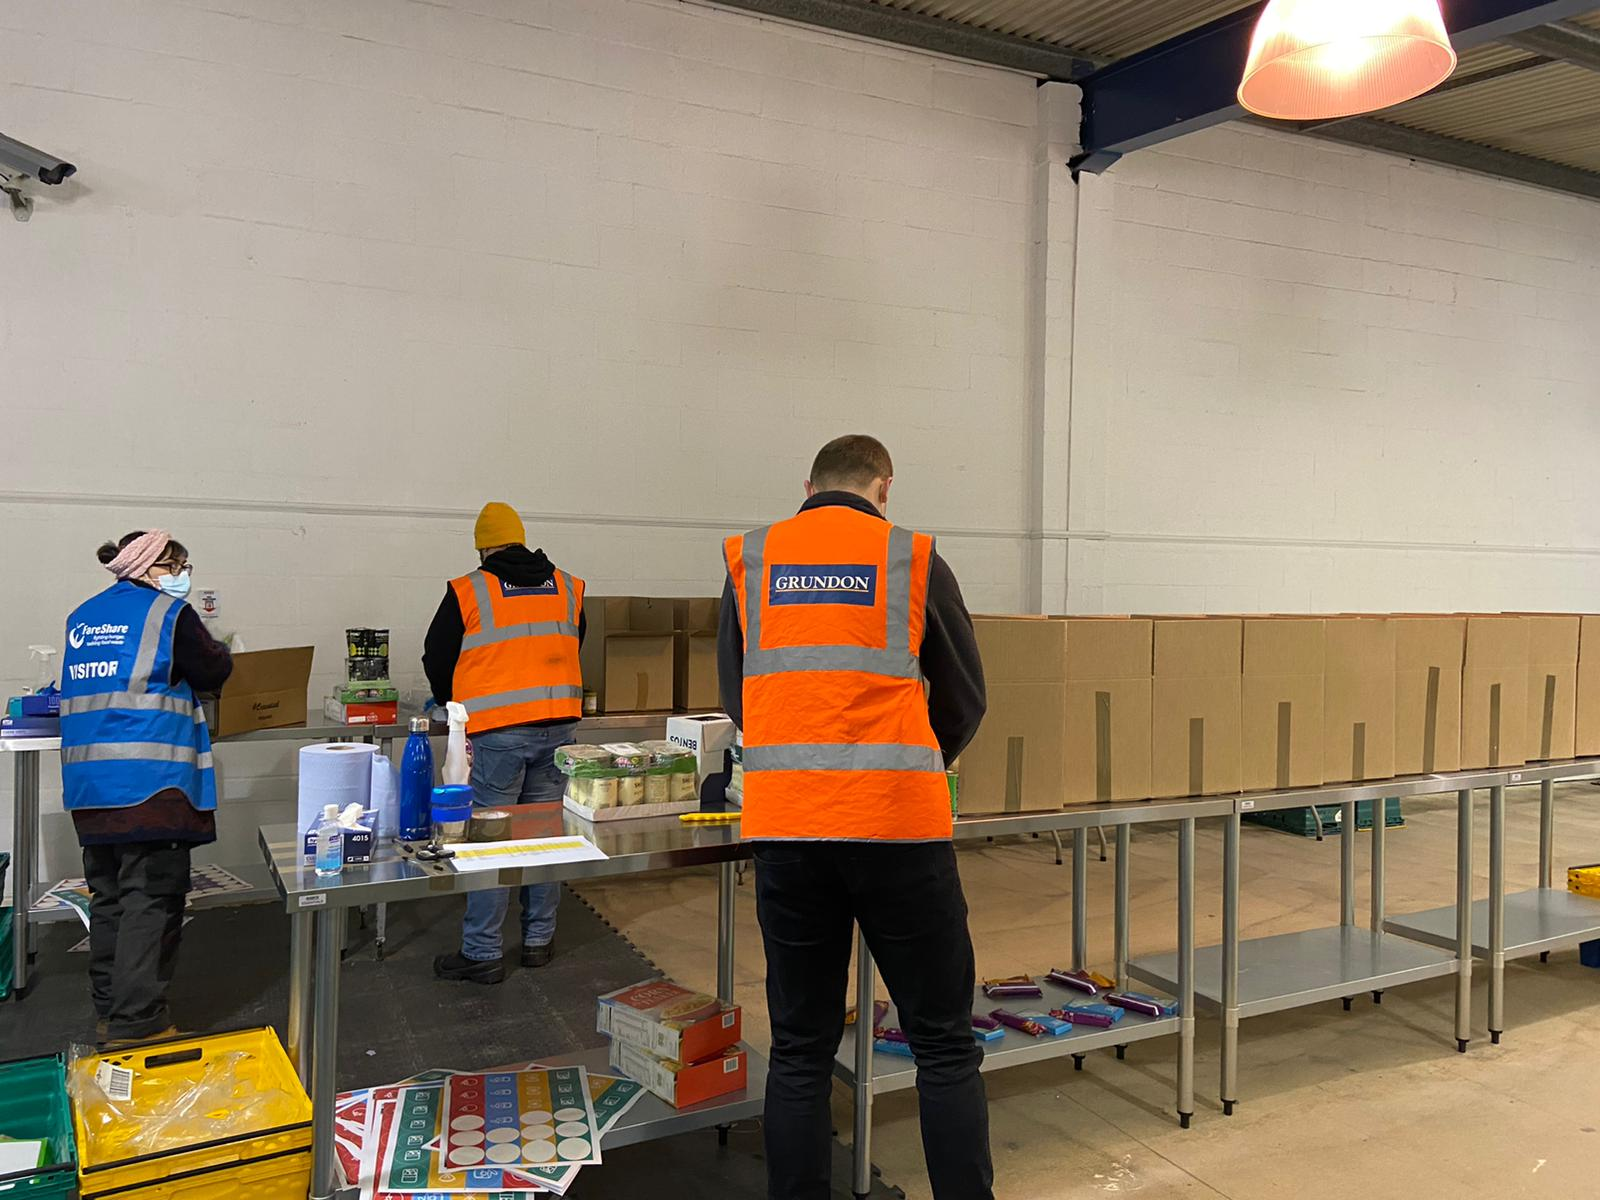 Members of the Grundon team pack food parcels ready for them to be distributed to the local community.